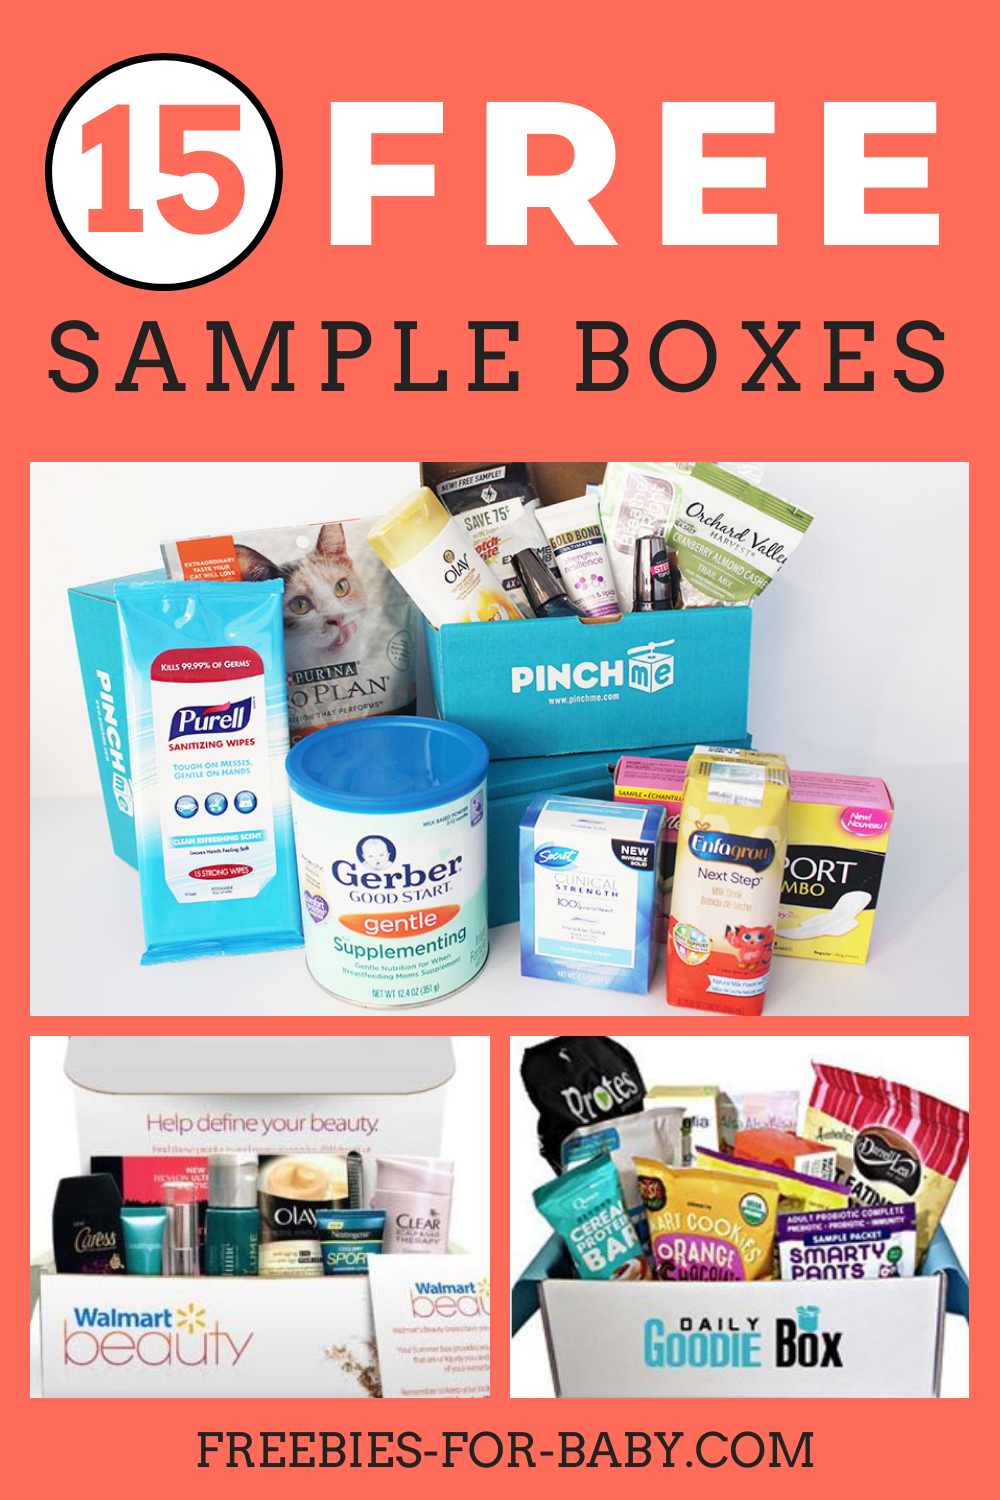 15 Free Sample Boxes Legit Free Stuff For Moms In 2020 Free Sample Boxes Free Stuff By Mail Sample Box